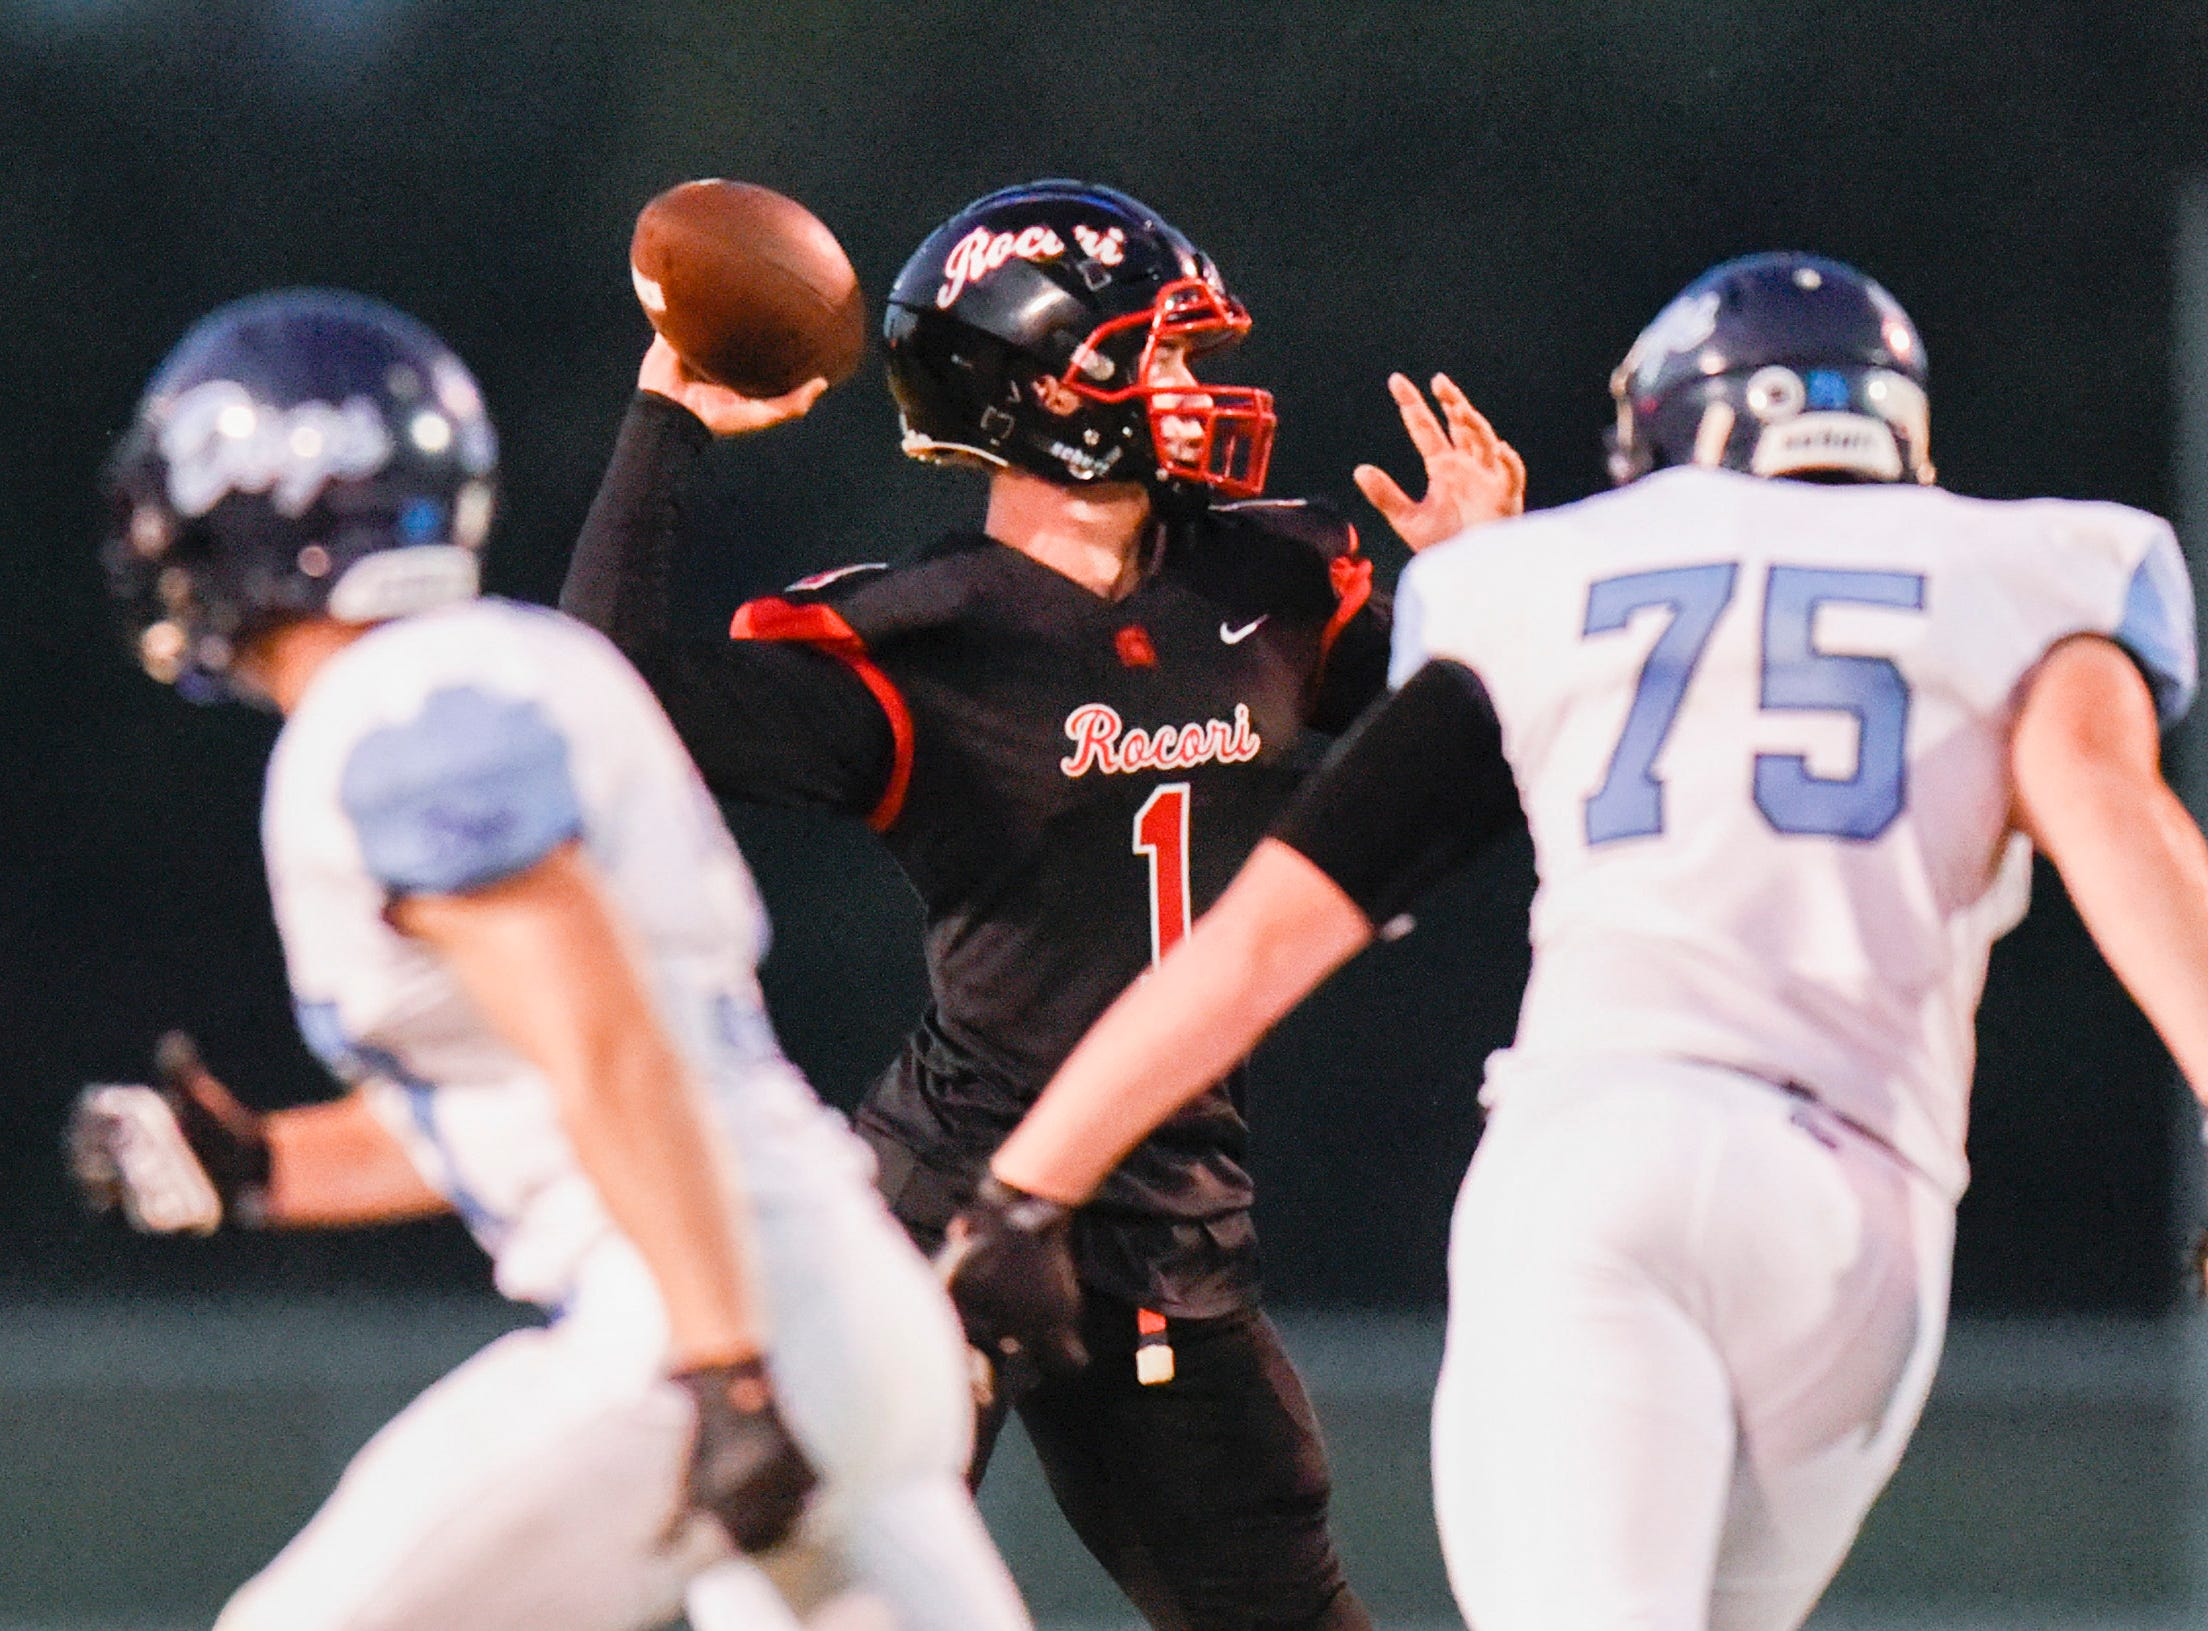 ROCORI quarterback Jack Steil sets up to throw against Becker during the first half Friday, Sept. 14, in Cold Spring.